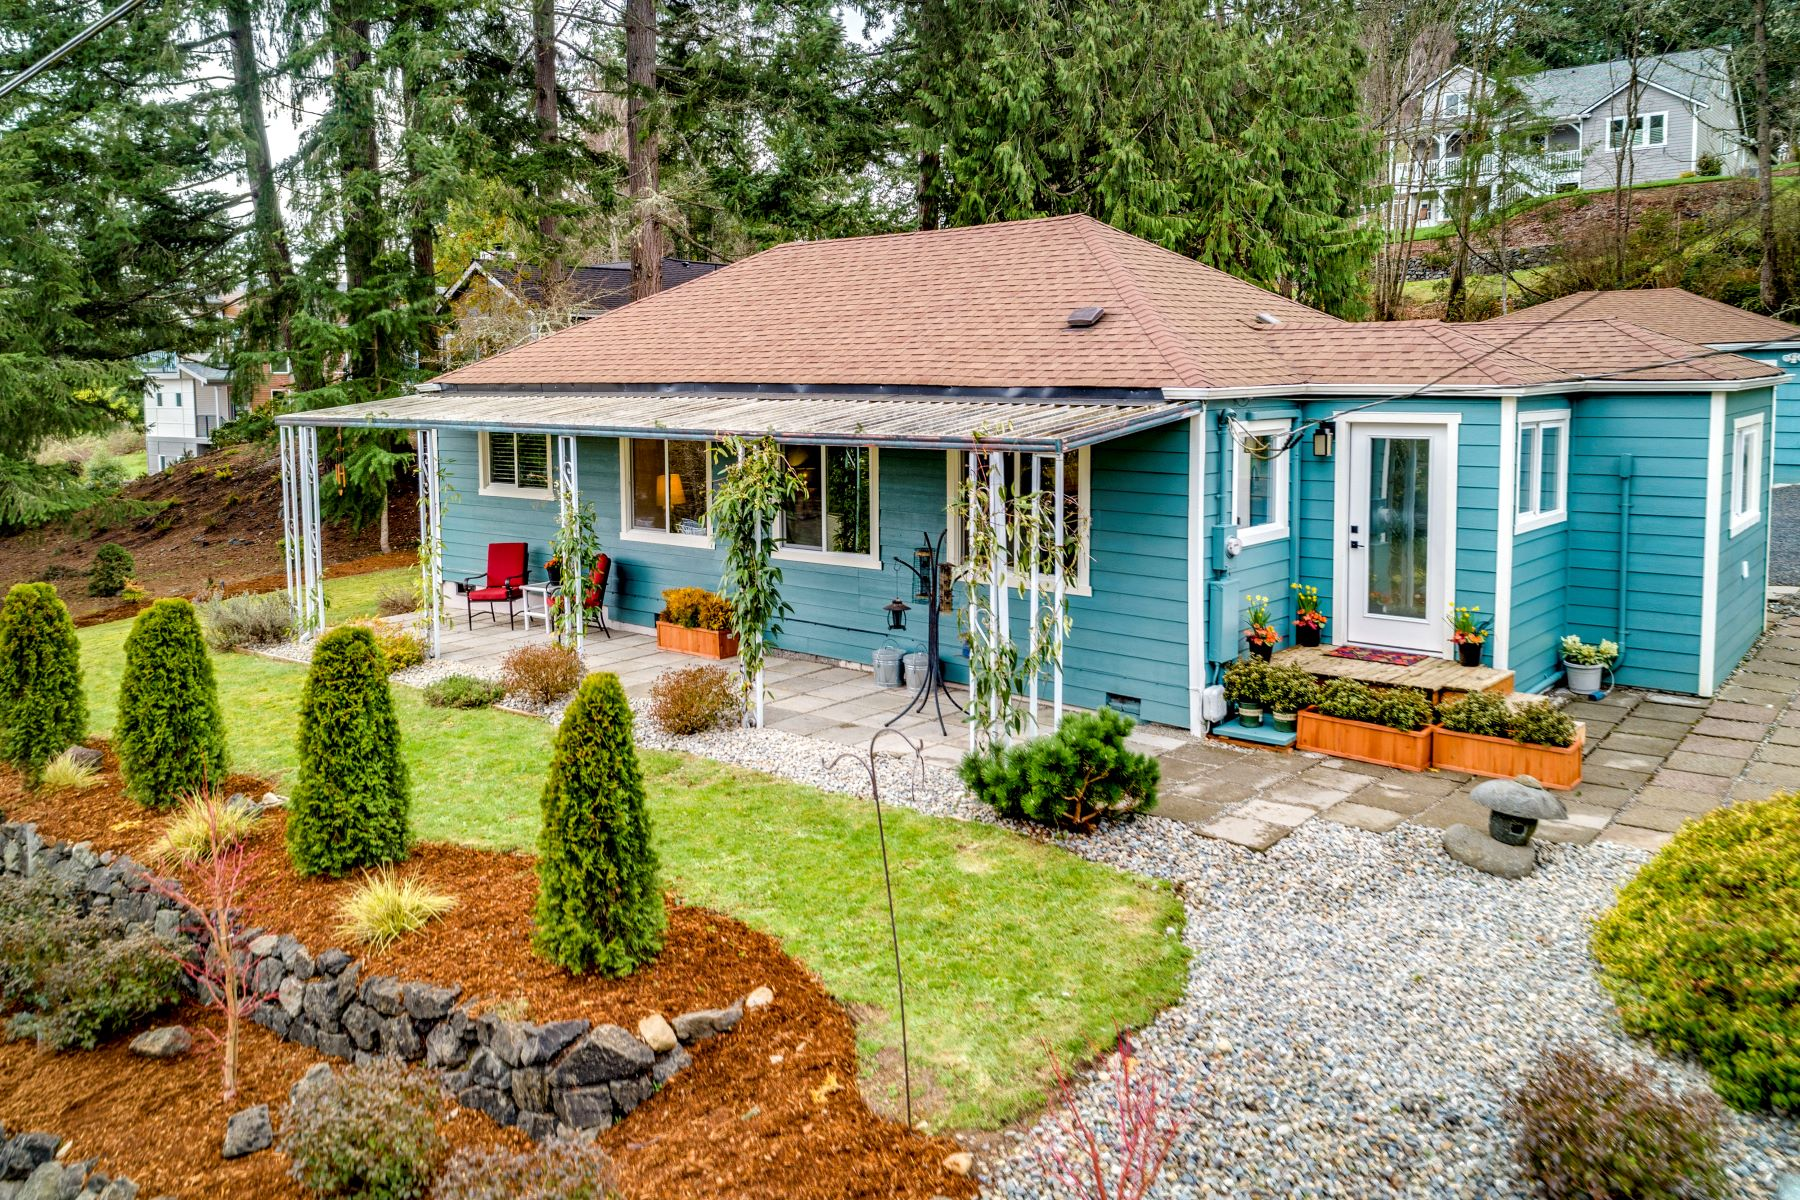 Single Family Homes for Sale at 9416 Peacock Hill Avenue, Gig Harbor, WA 98332 9416 Peacock Hill Ave Gig Harbor, Washington 98332 United States